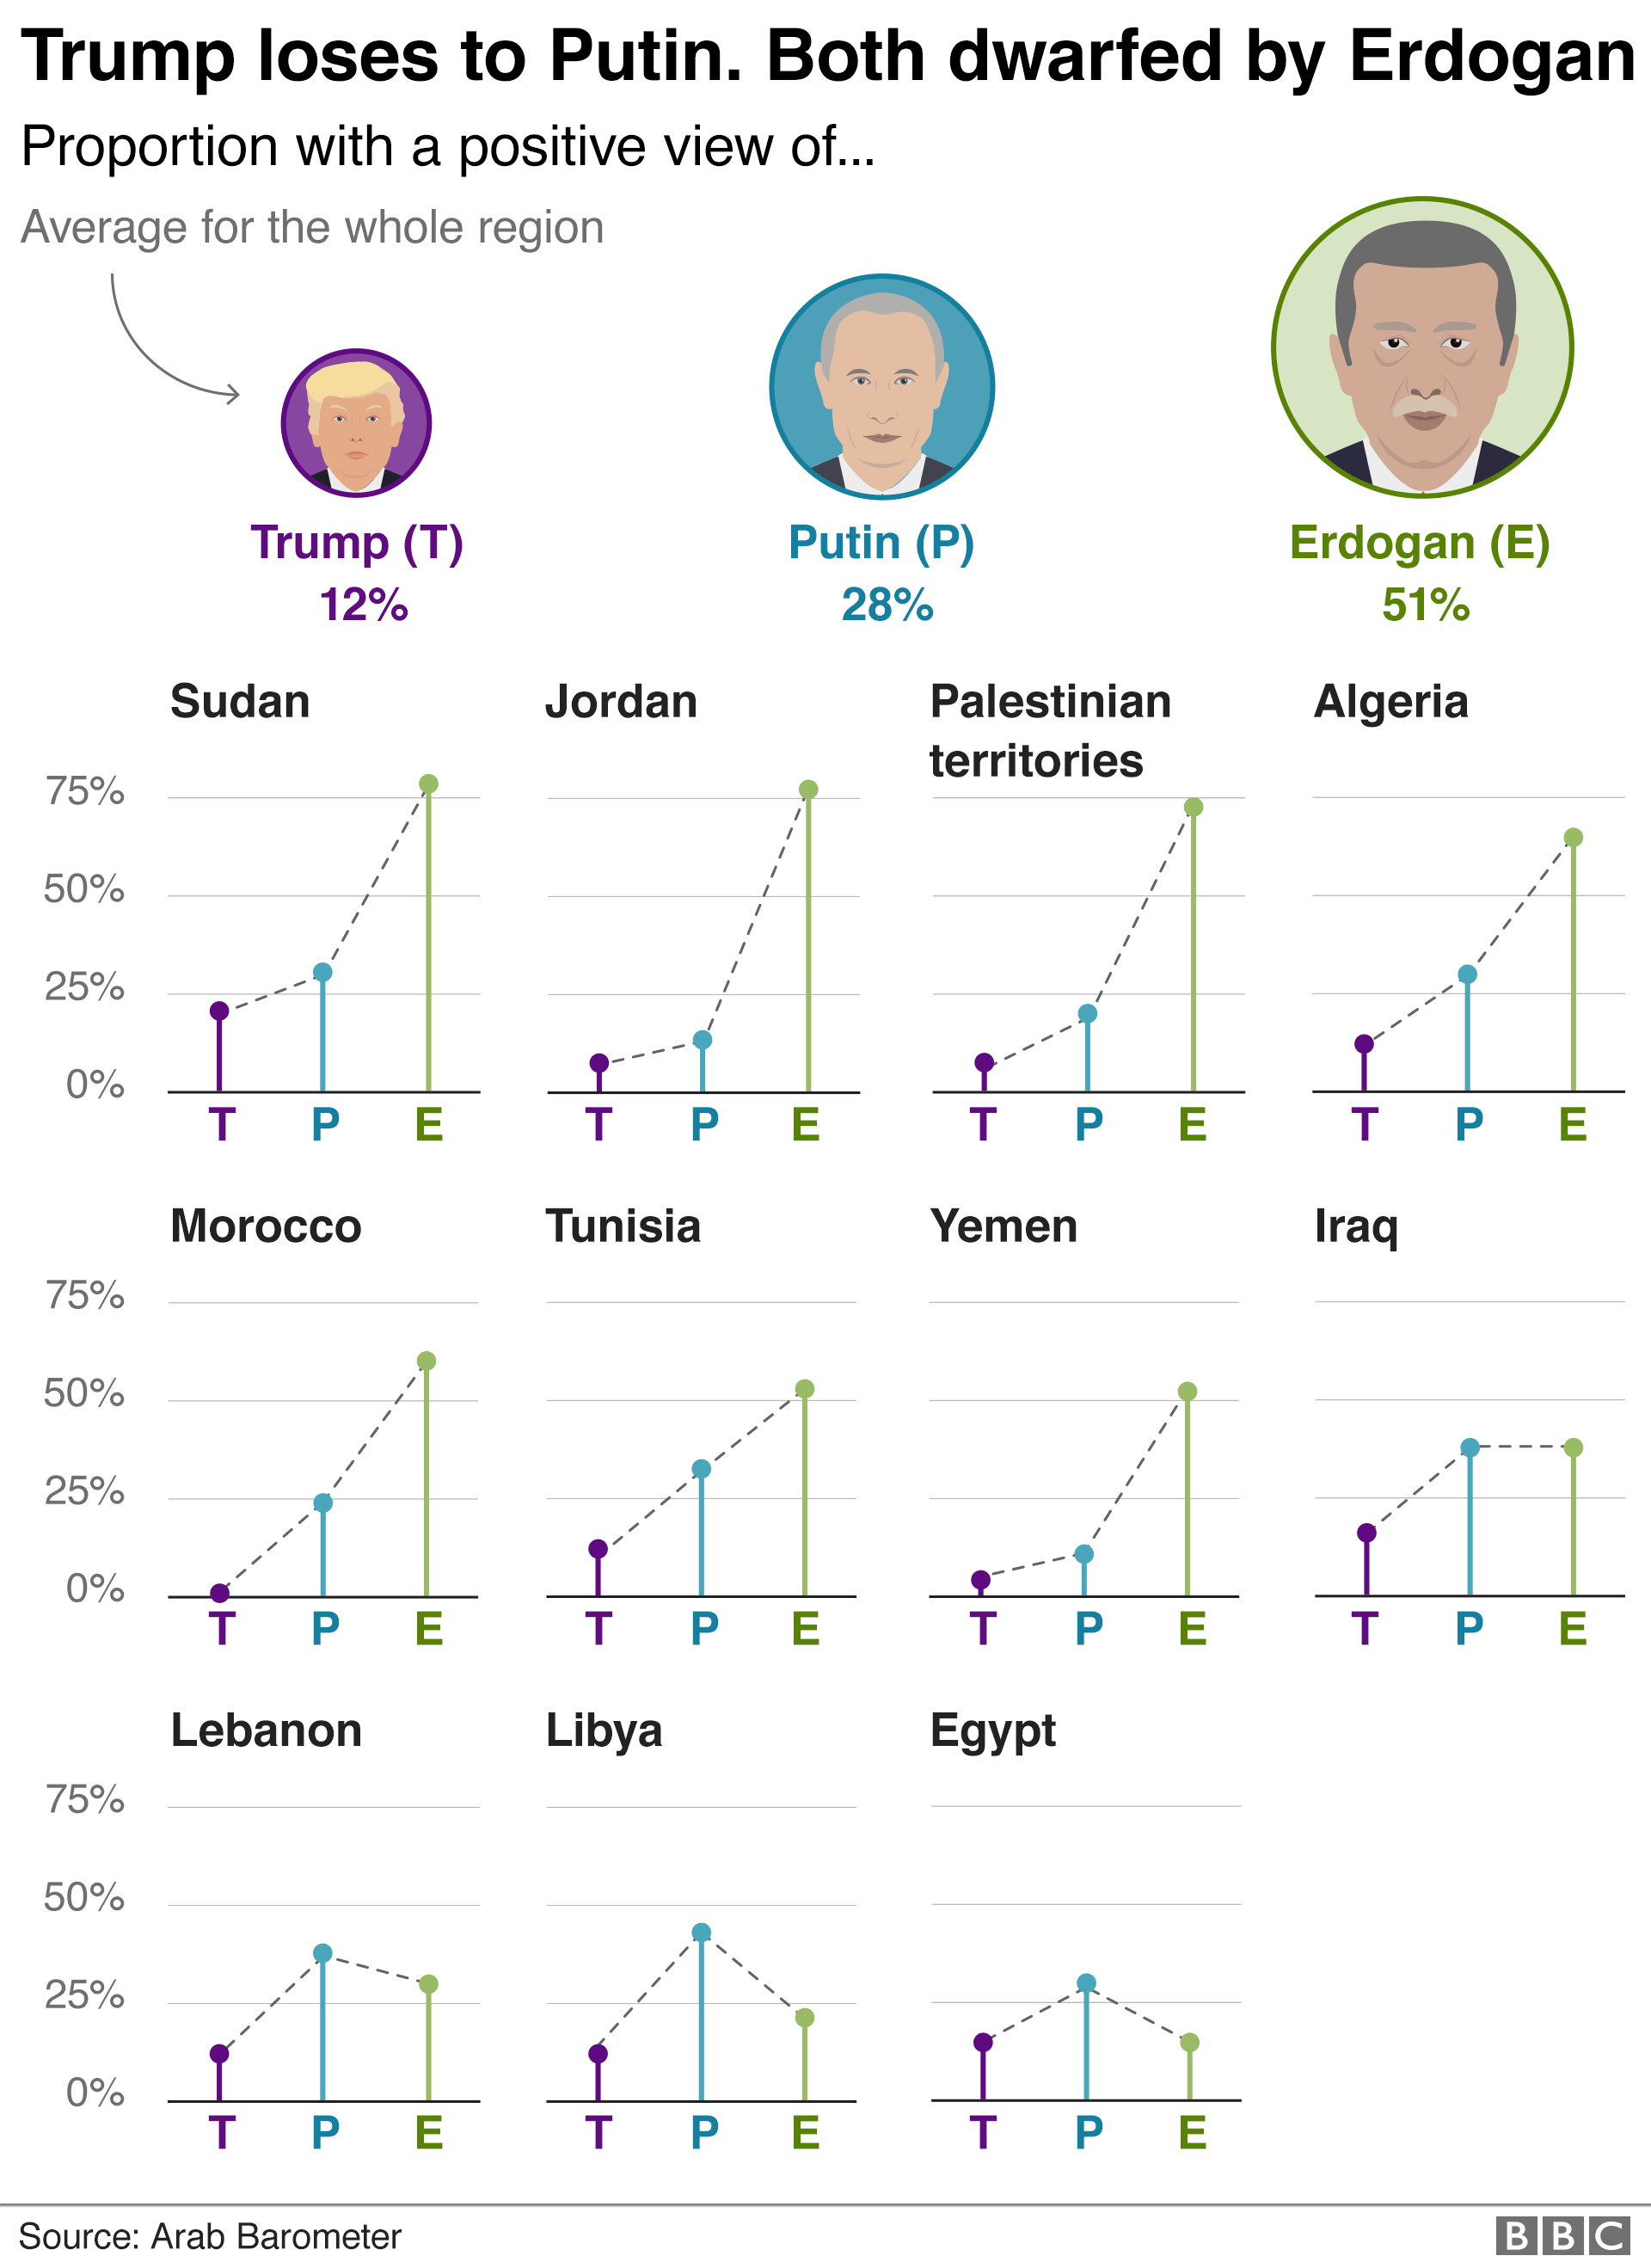 Chart showing that Erdogan is more popular than Trump and Putin in the region. Arabs